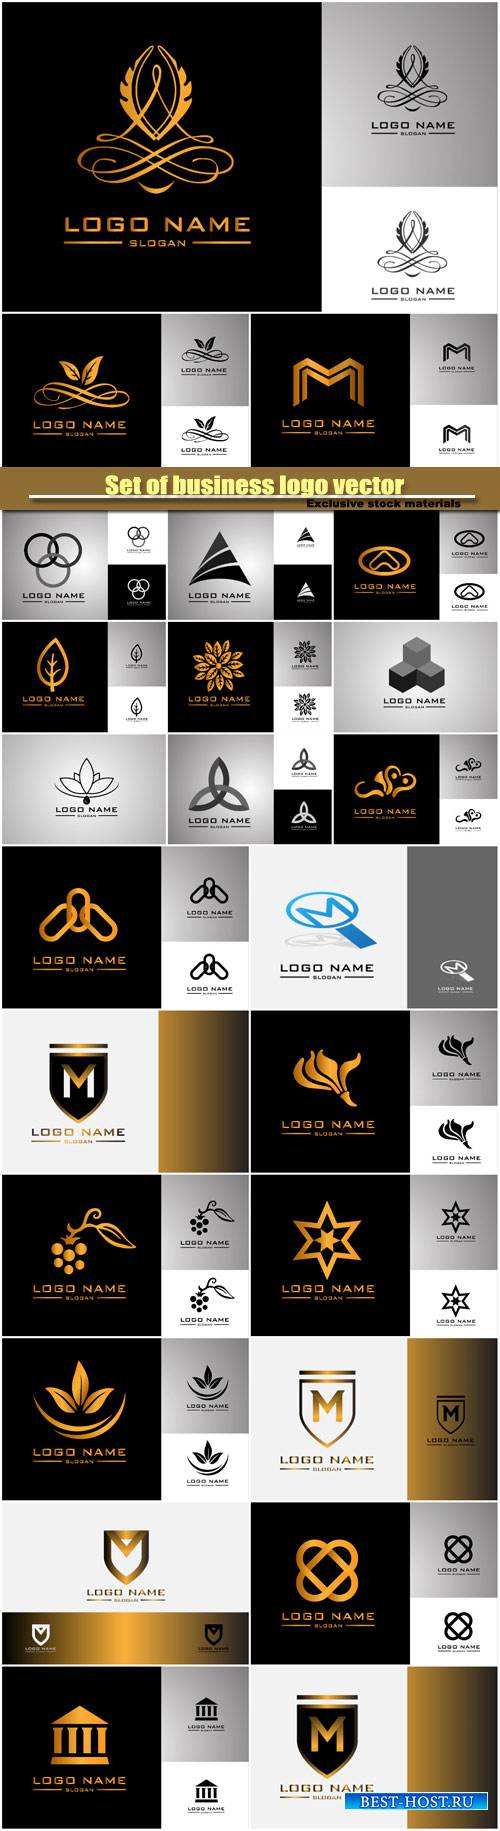 Set of business logo vector